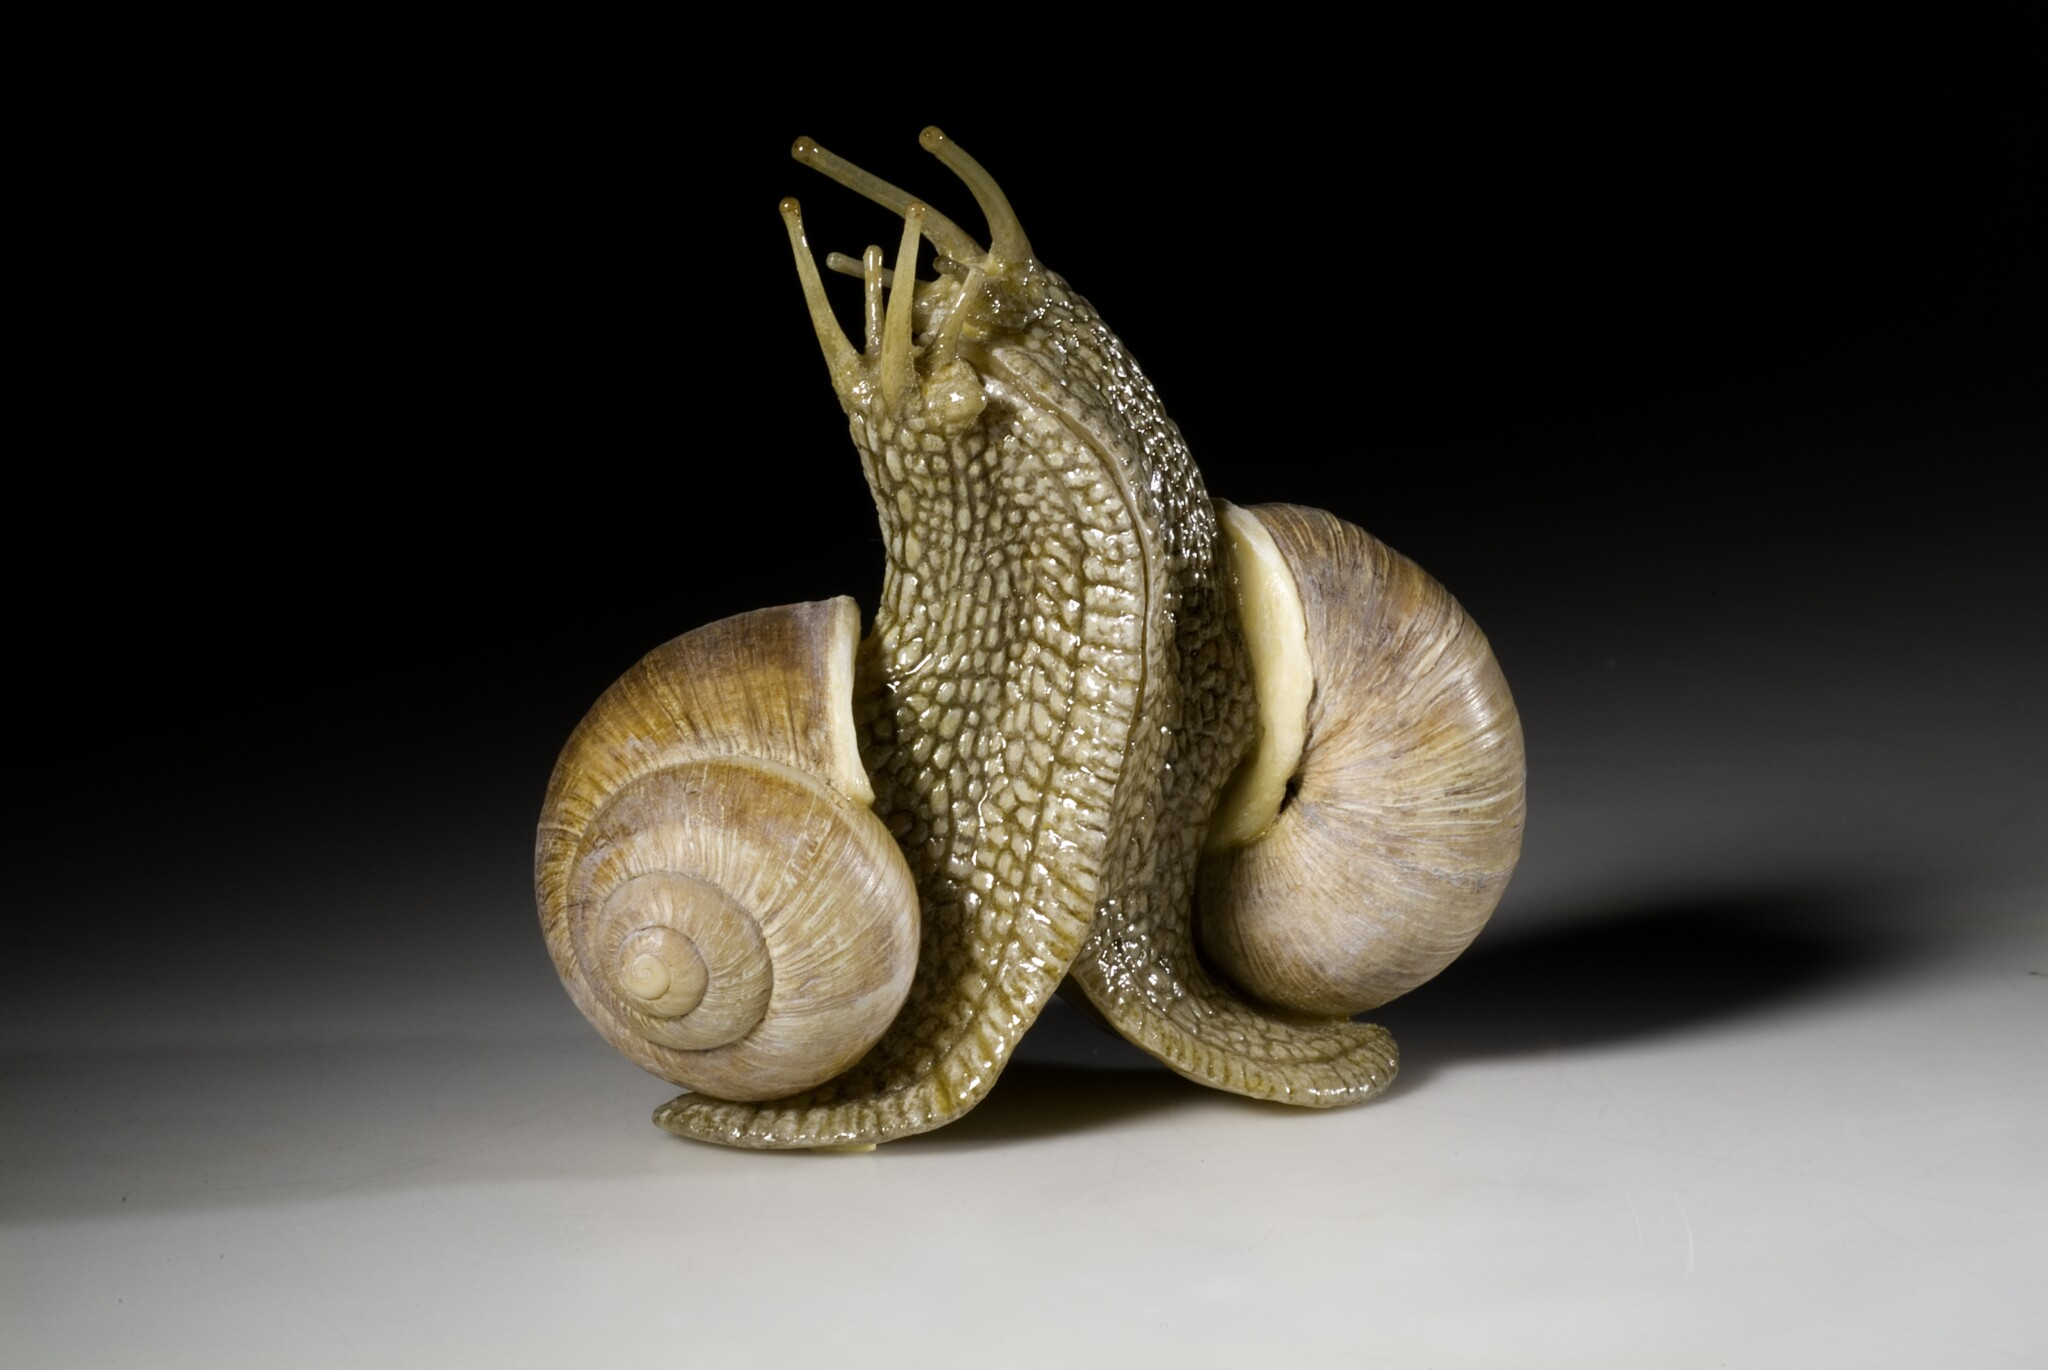 Slimy! Model of two Roman Snails (helix pomatia) mating, prepared the taxidermy experts of the museum (2020). Copyright: Carola Radke, Museum für Naturkunde Berlin.